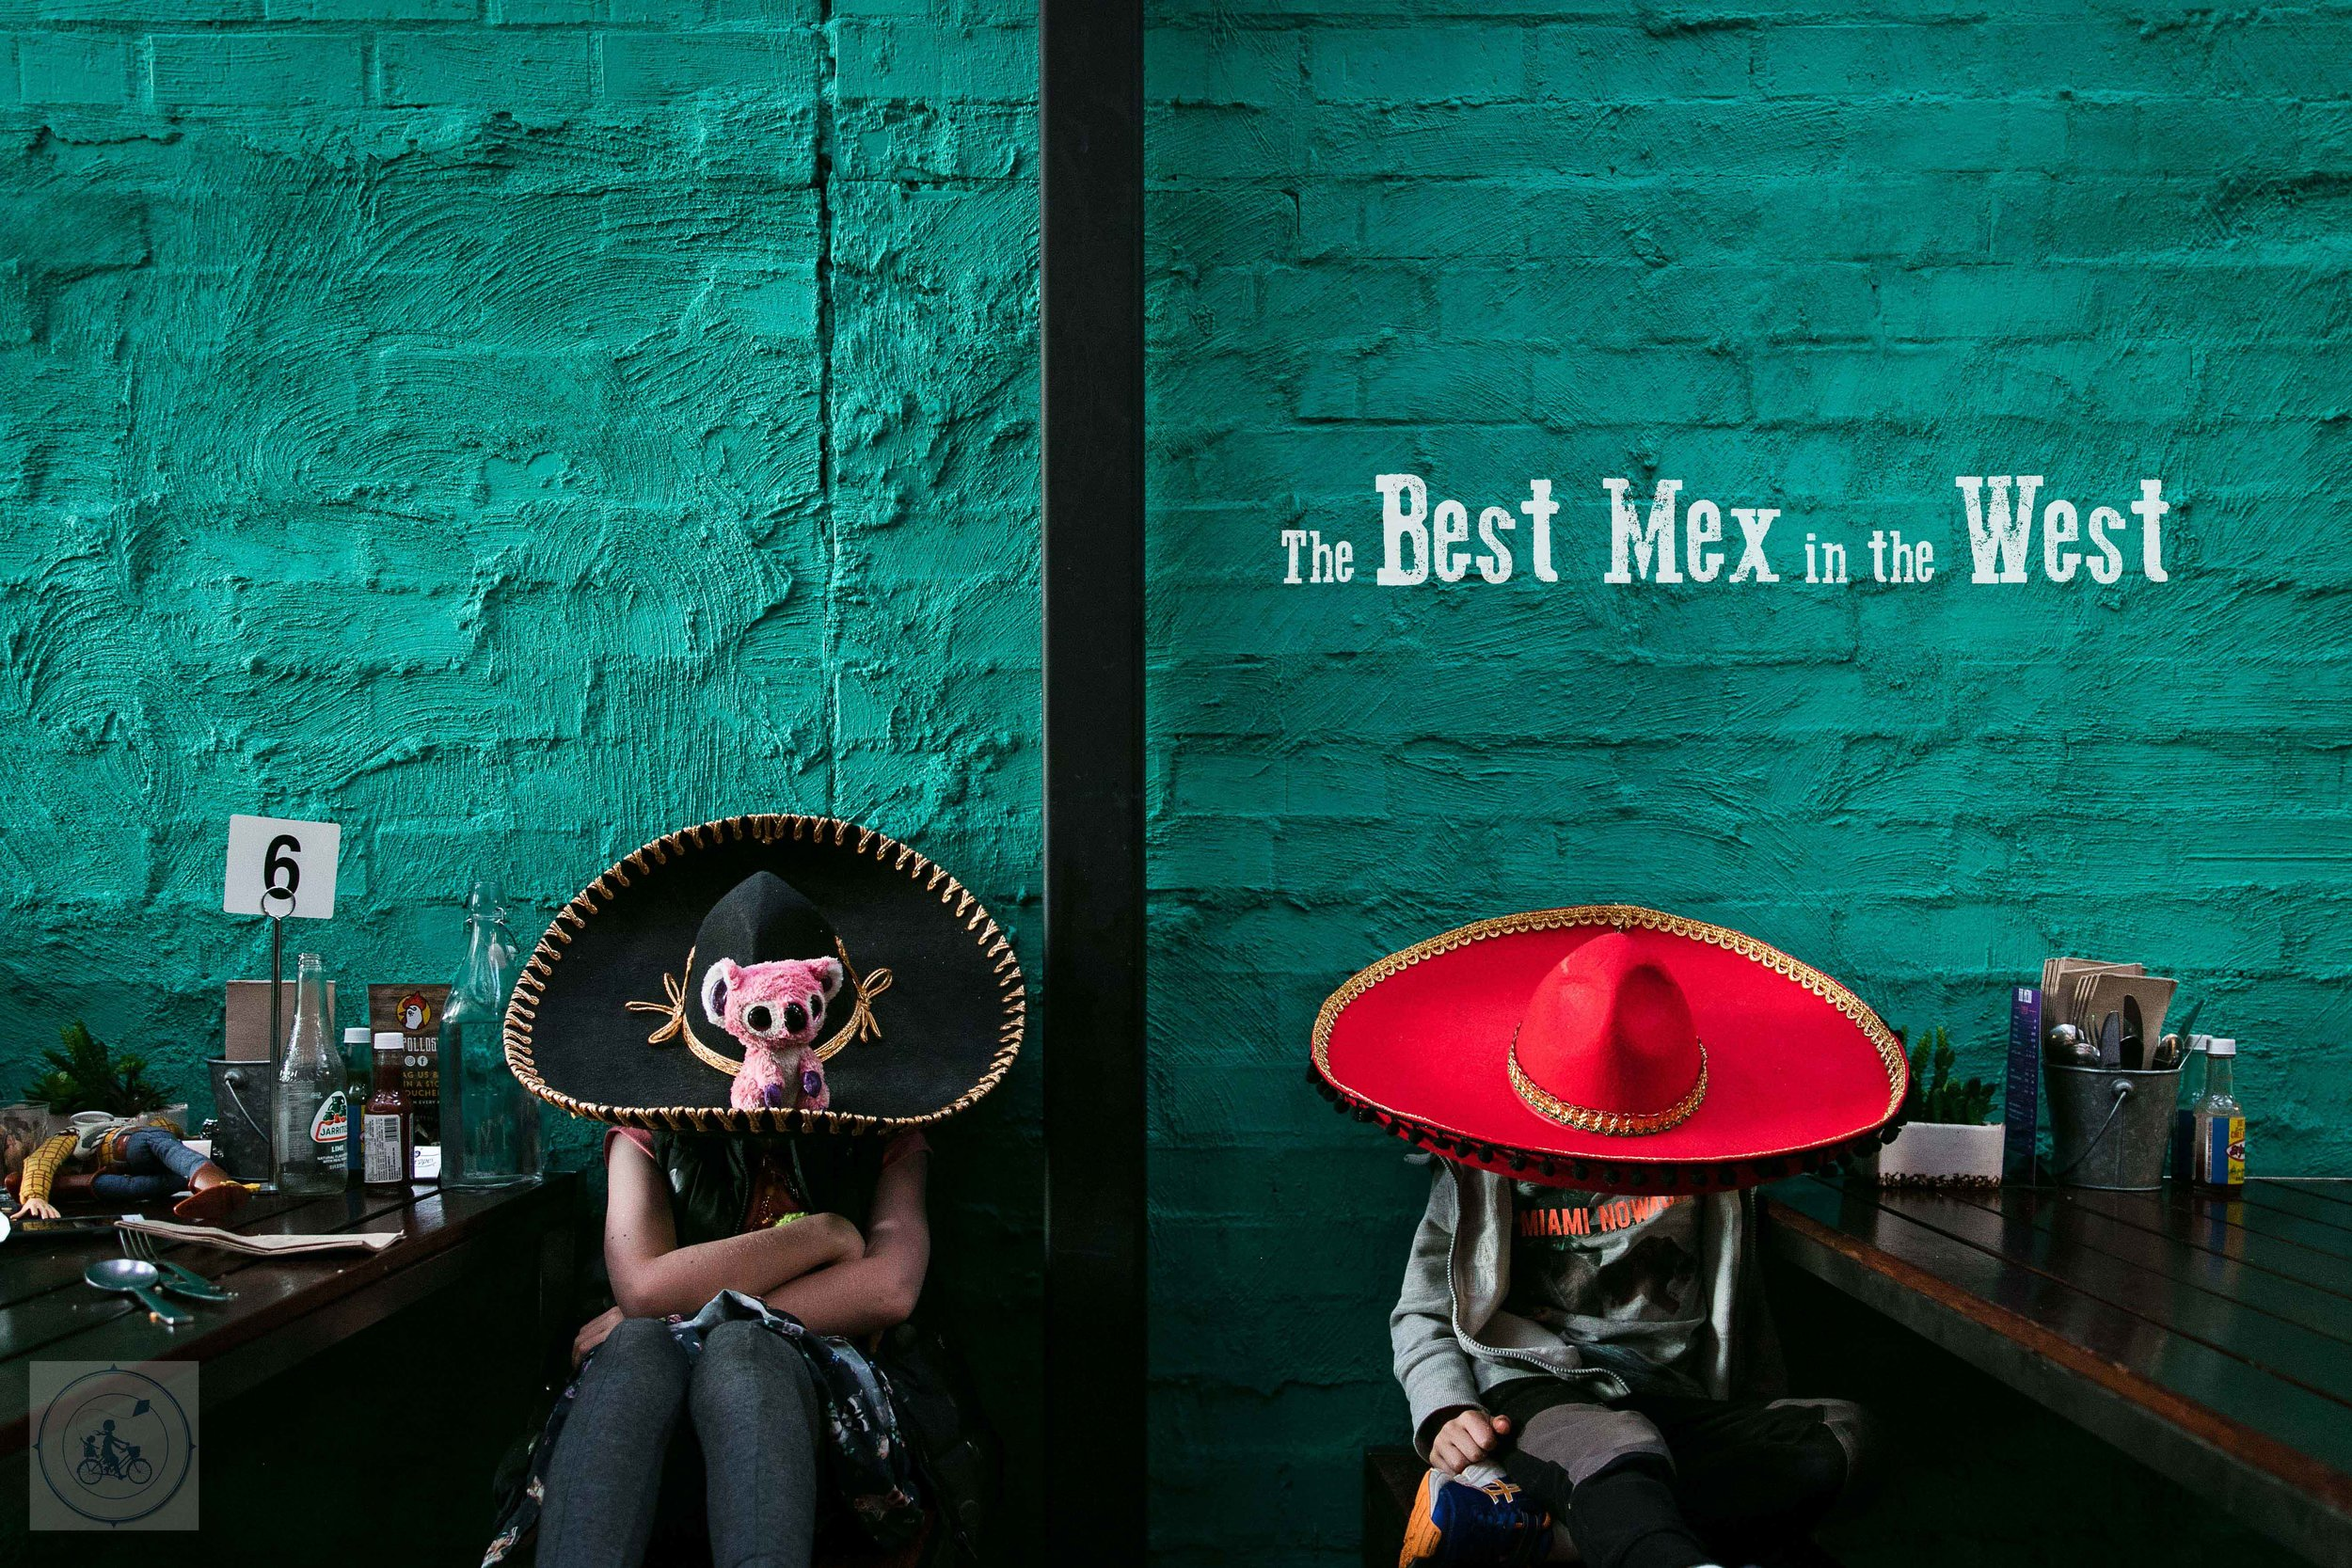 best mex in the west 2.jpg